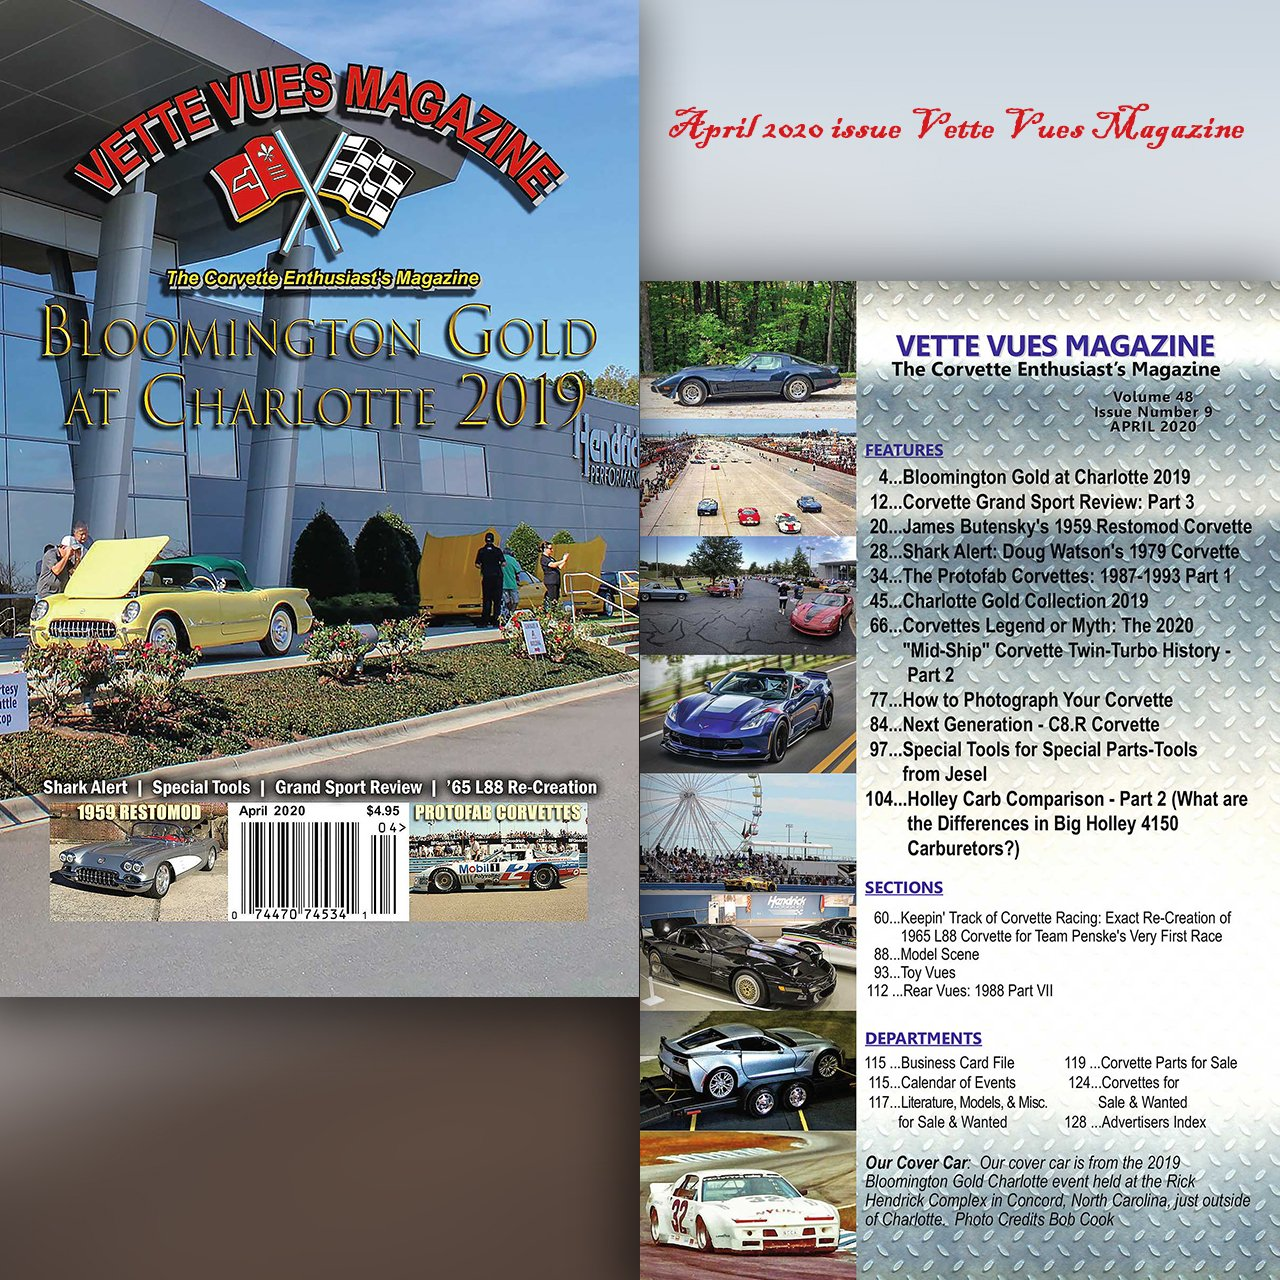 Vette Vues Magazine April 2020 has several features including the coverage of the 2019 Bloomington Gold Charlotte event. History, tech, parts for sale and more.